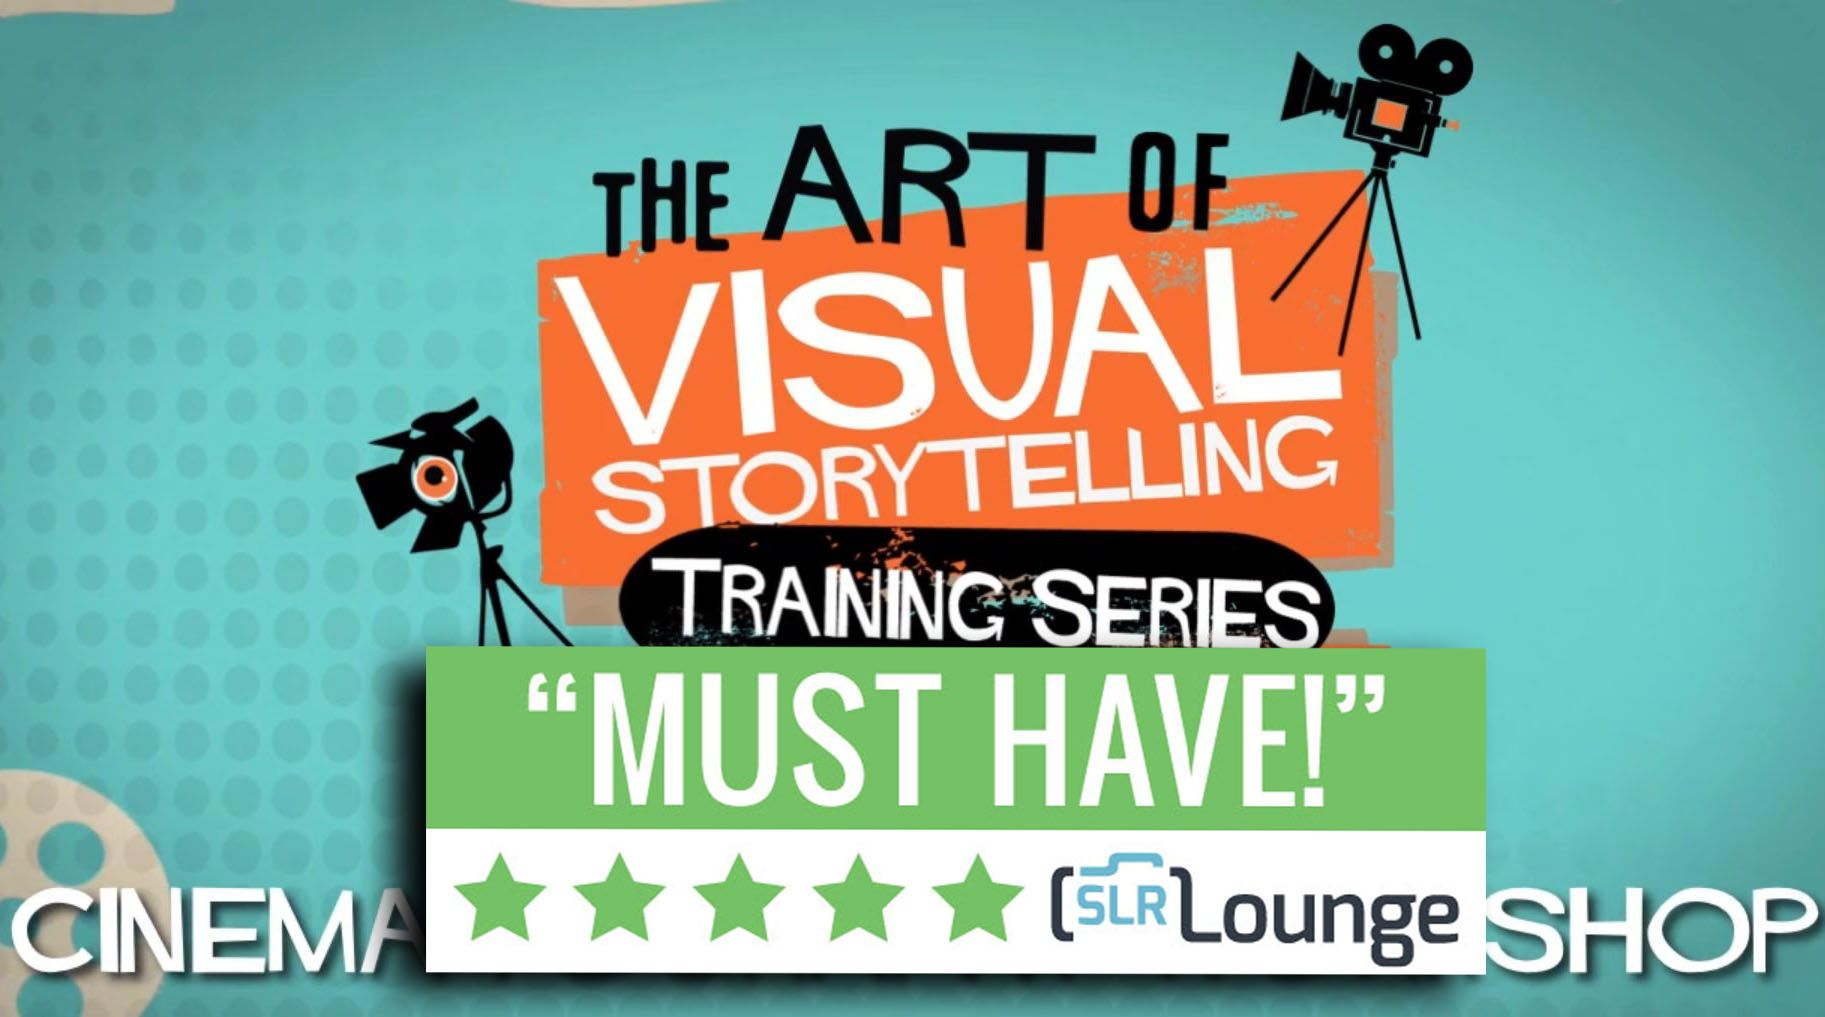 CINEMATOGRAPHY WORKSHOP REVIEW: THE ART OF VISUAL STORYTELLING / http://vs2.mzed.com/reserve-now / http://www.mzed.com/alex-buono-hd-downloads/411-alex-buono-s-cinematography-hd-download.html